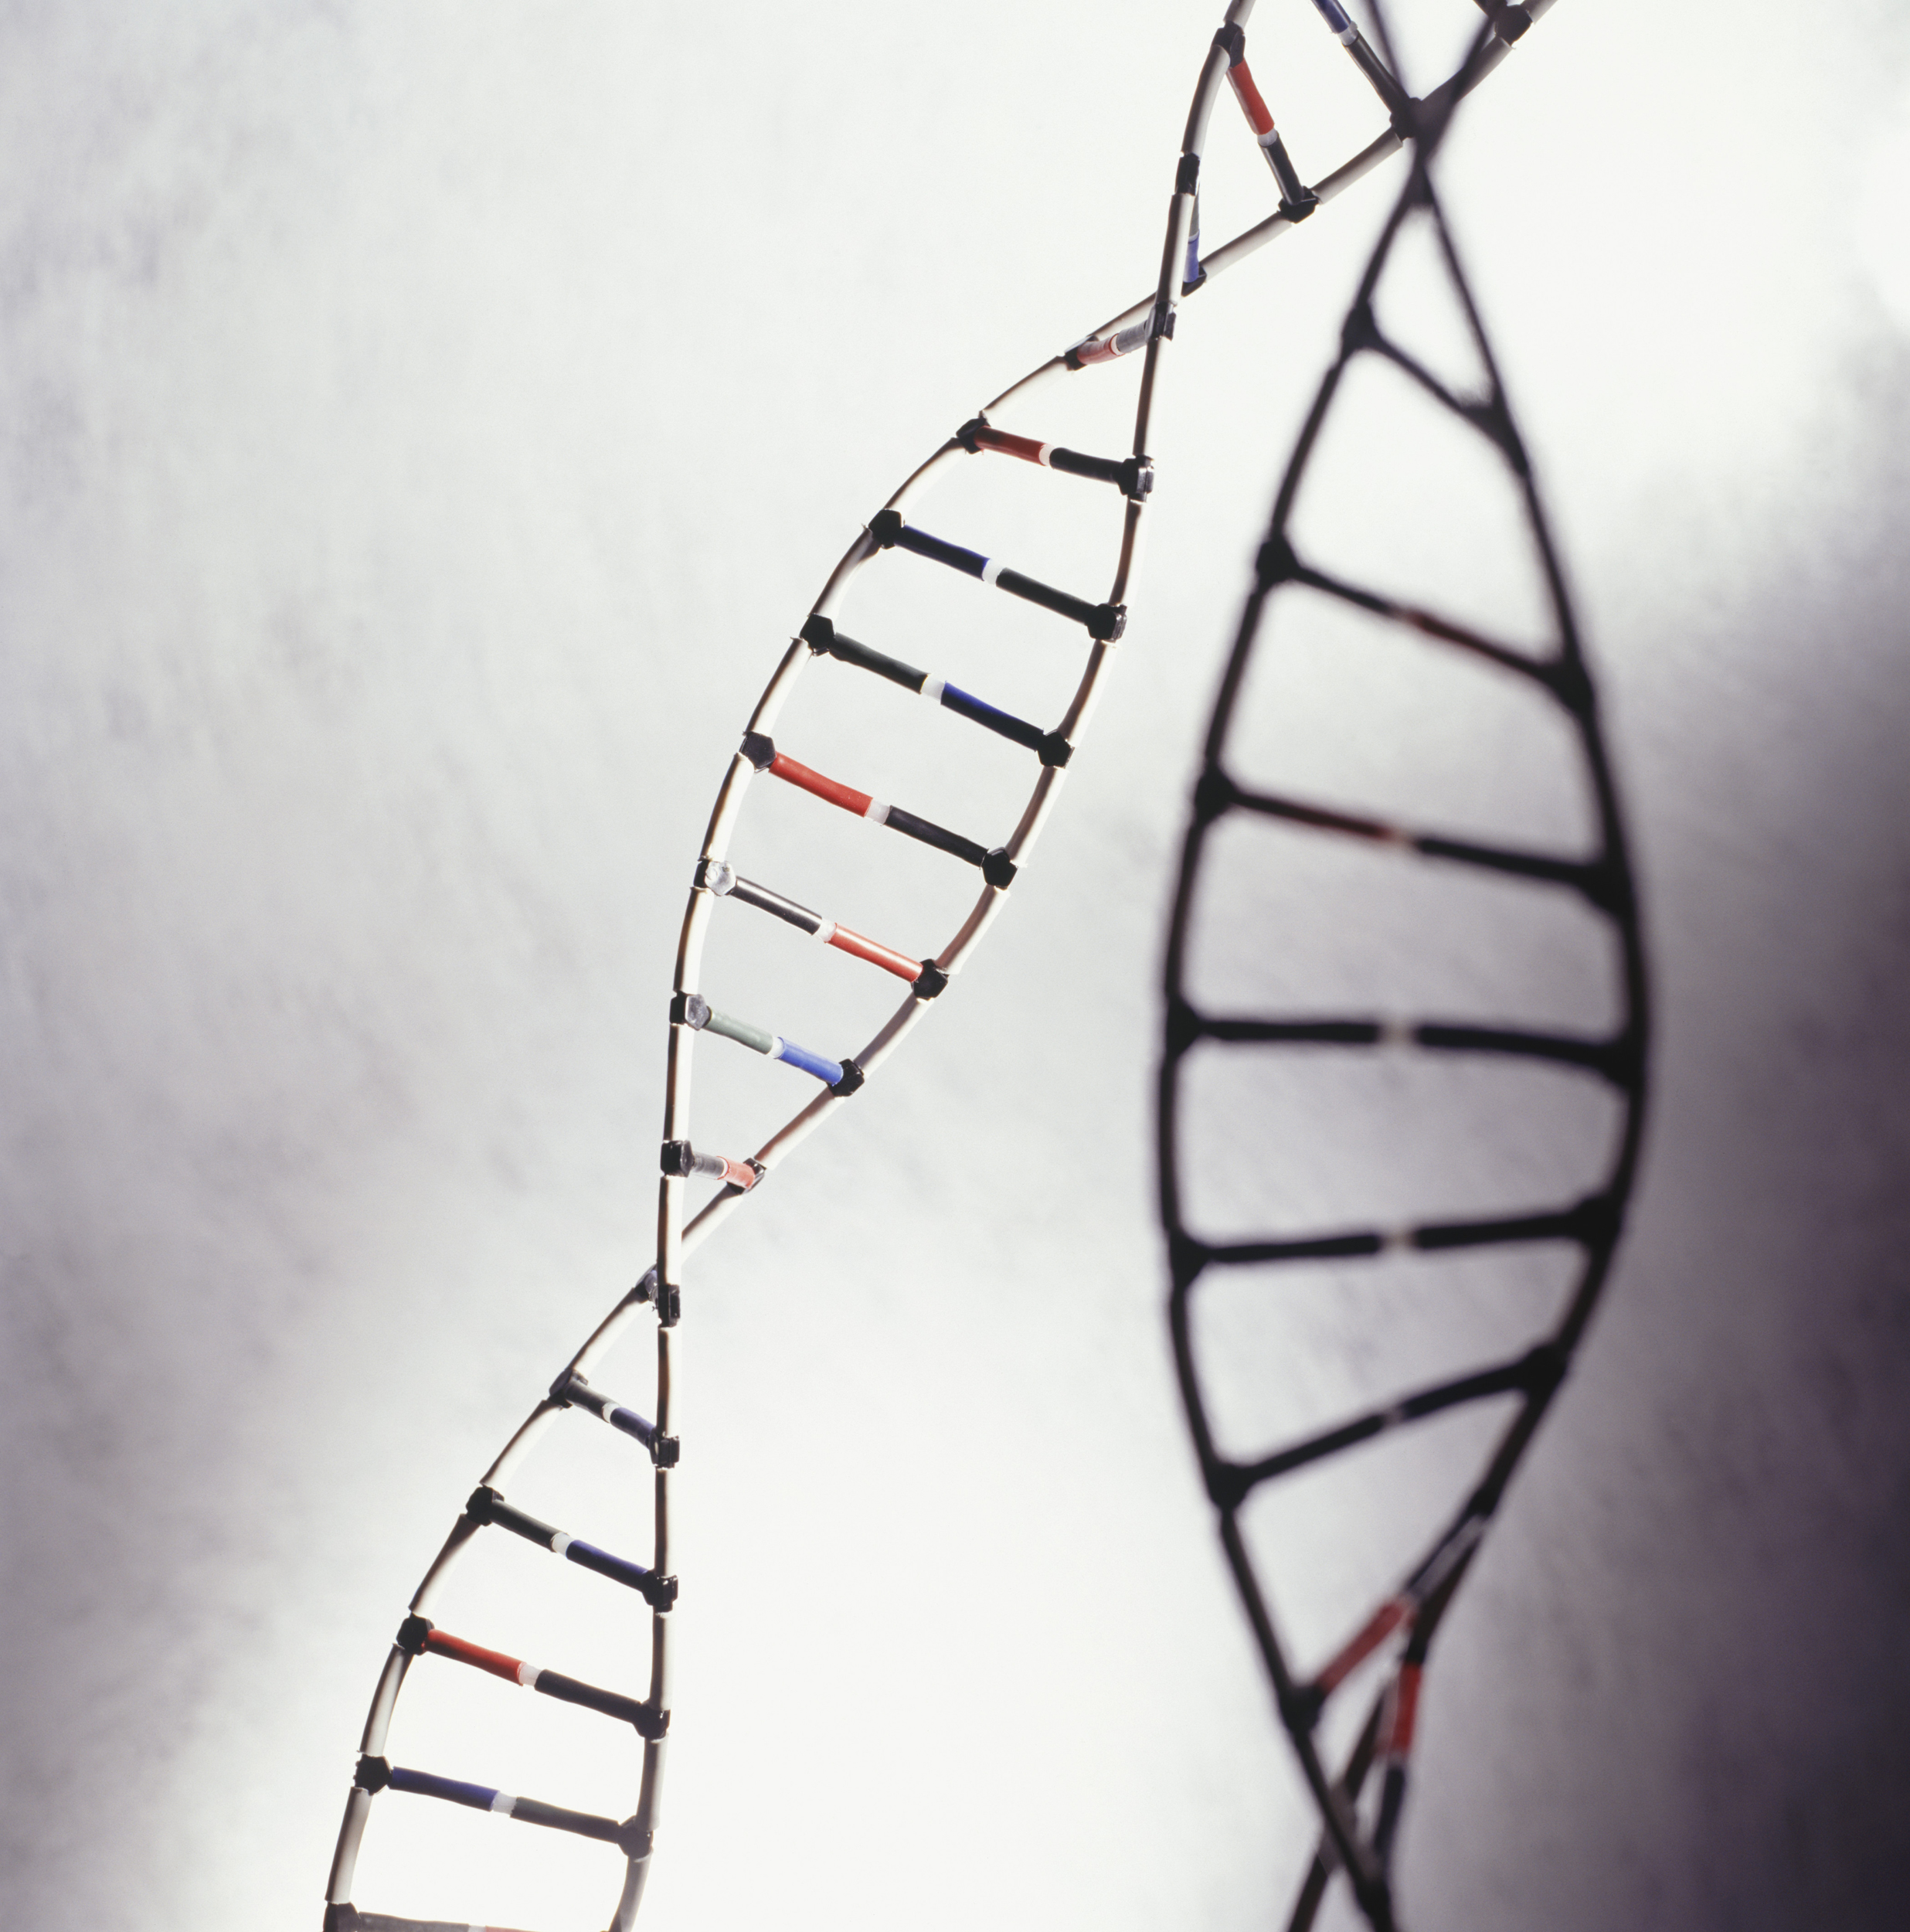 Study Confirms Gene Linked To Aspergers >> Dna Scan Uncovers 18 Genes Newly Associated With Autism